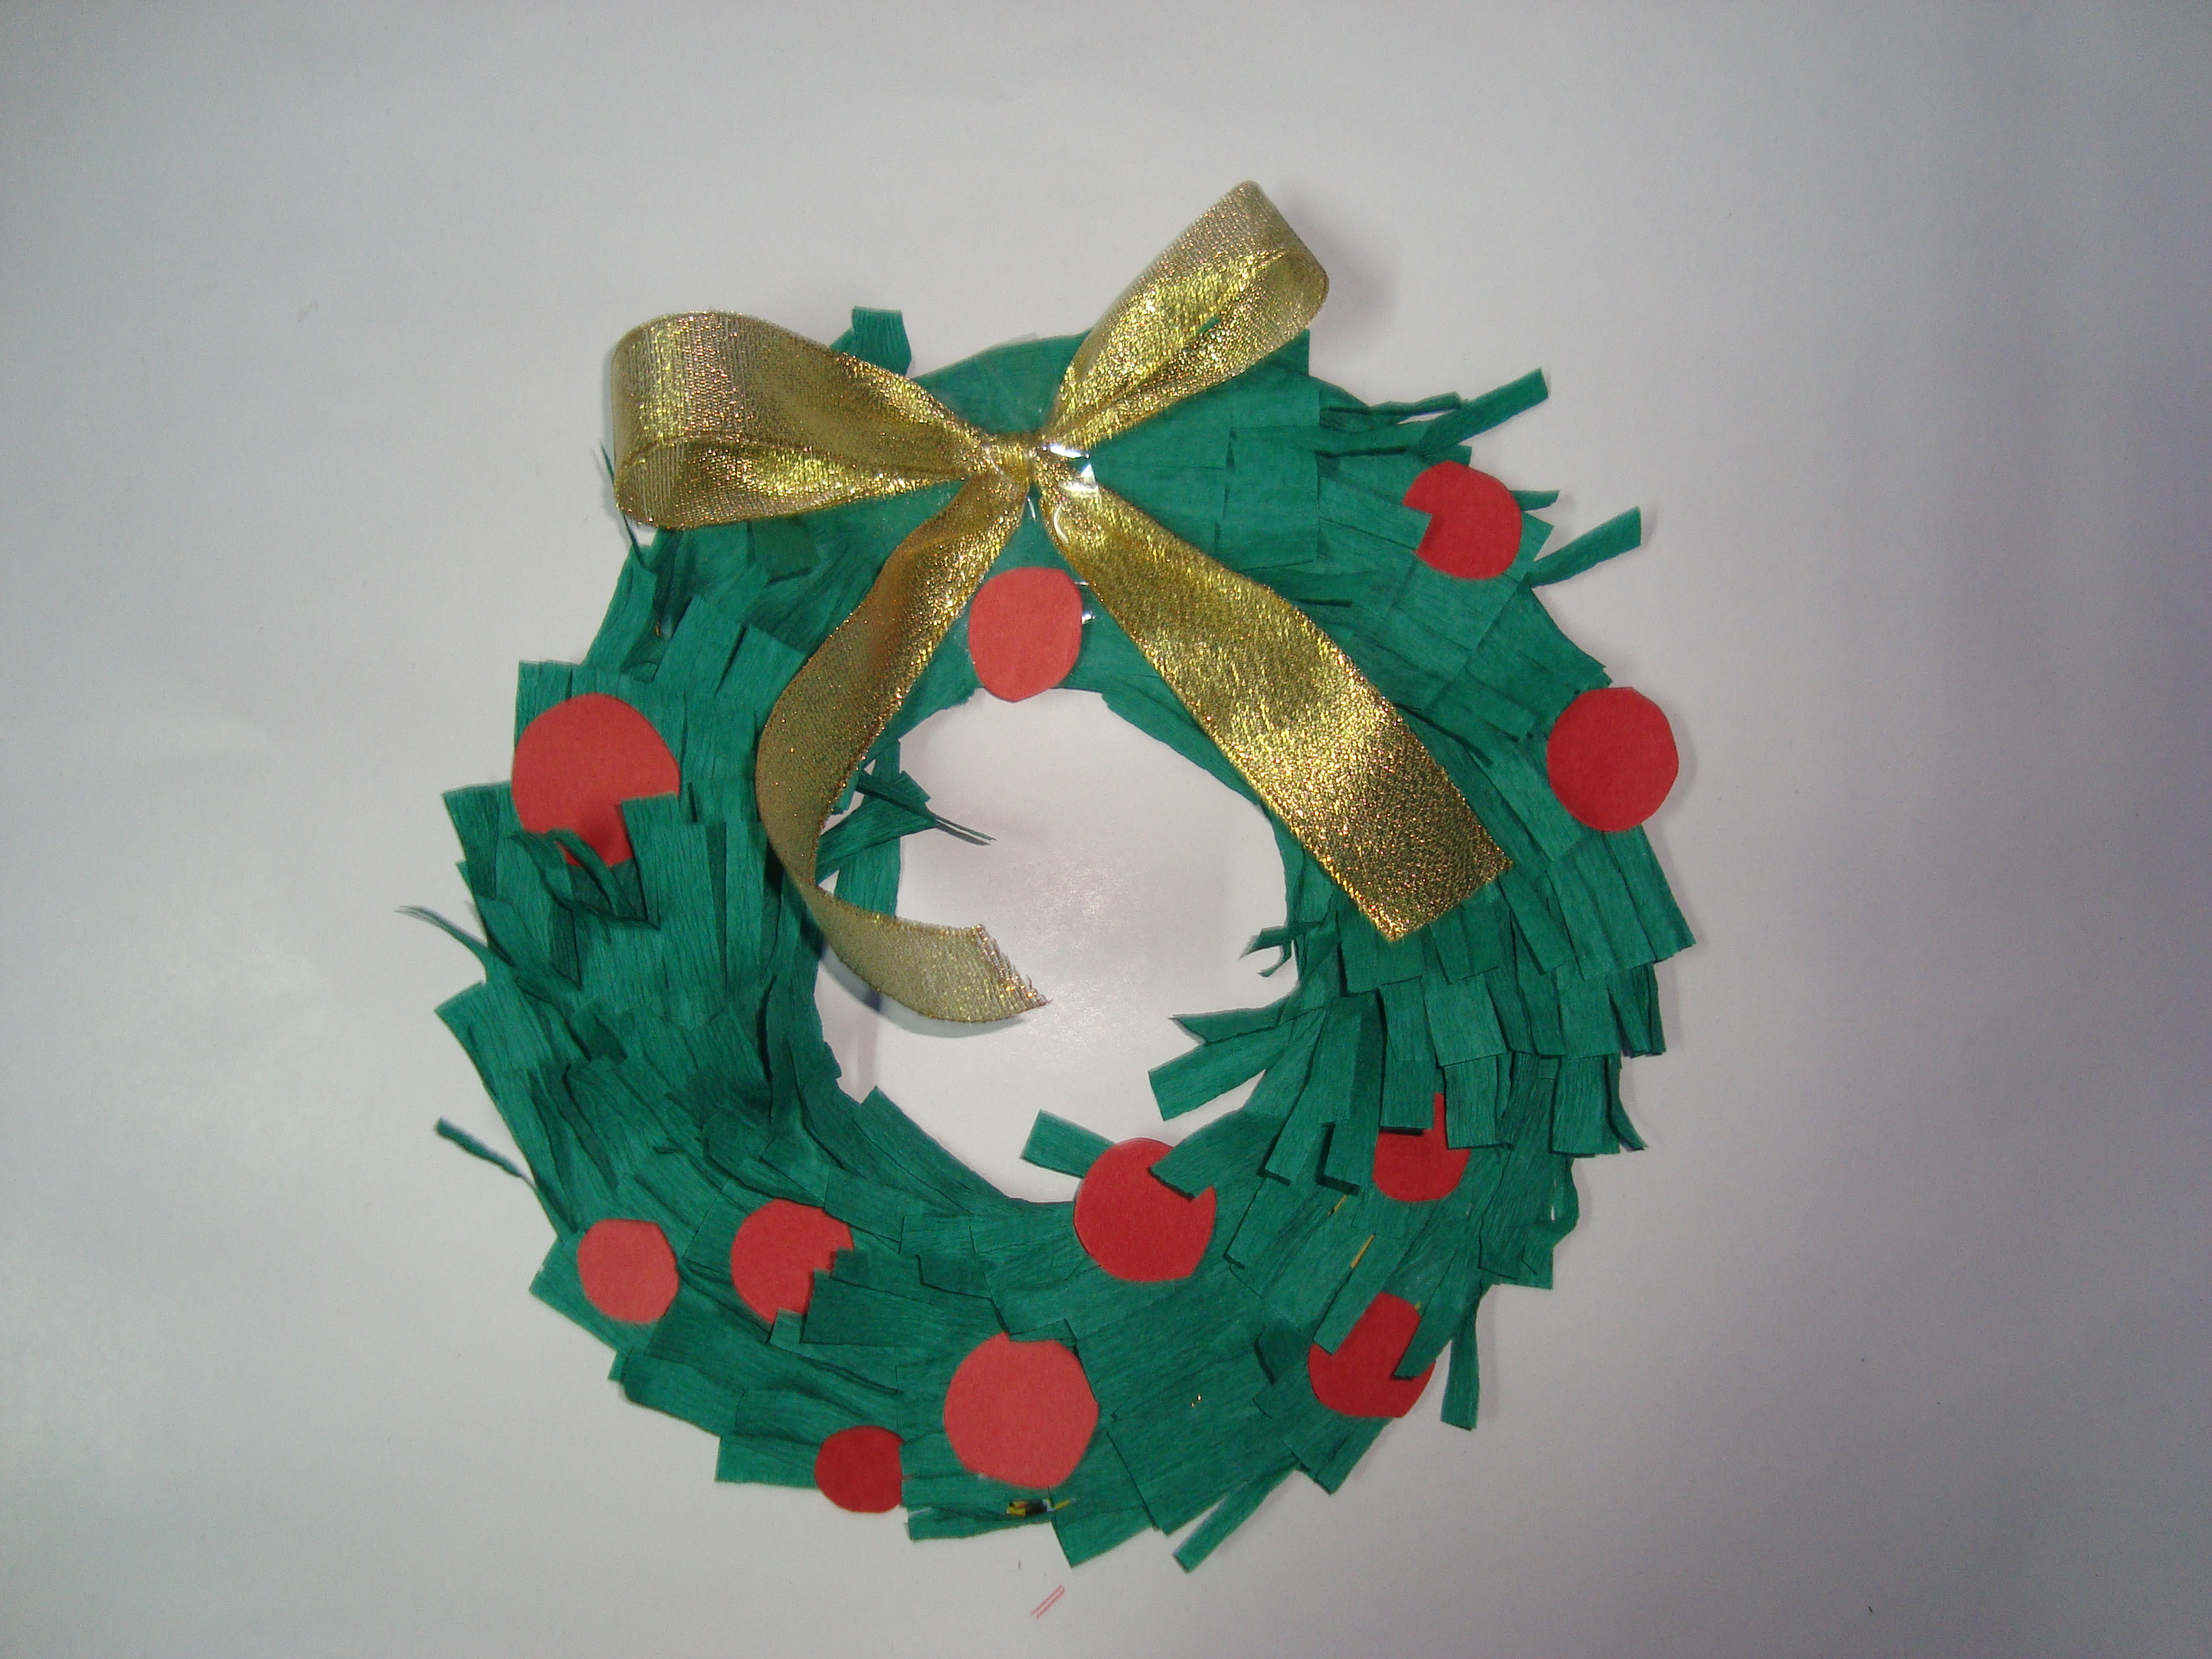 Easy to make christmas crafts for toddlers - Christmas Paper Wreaths Craft For Kids Easy To Make